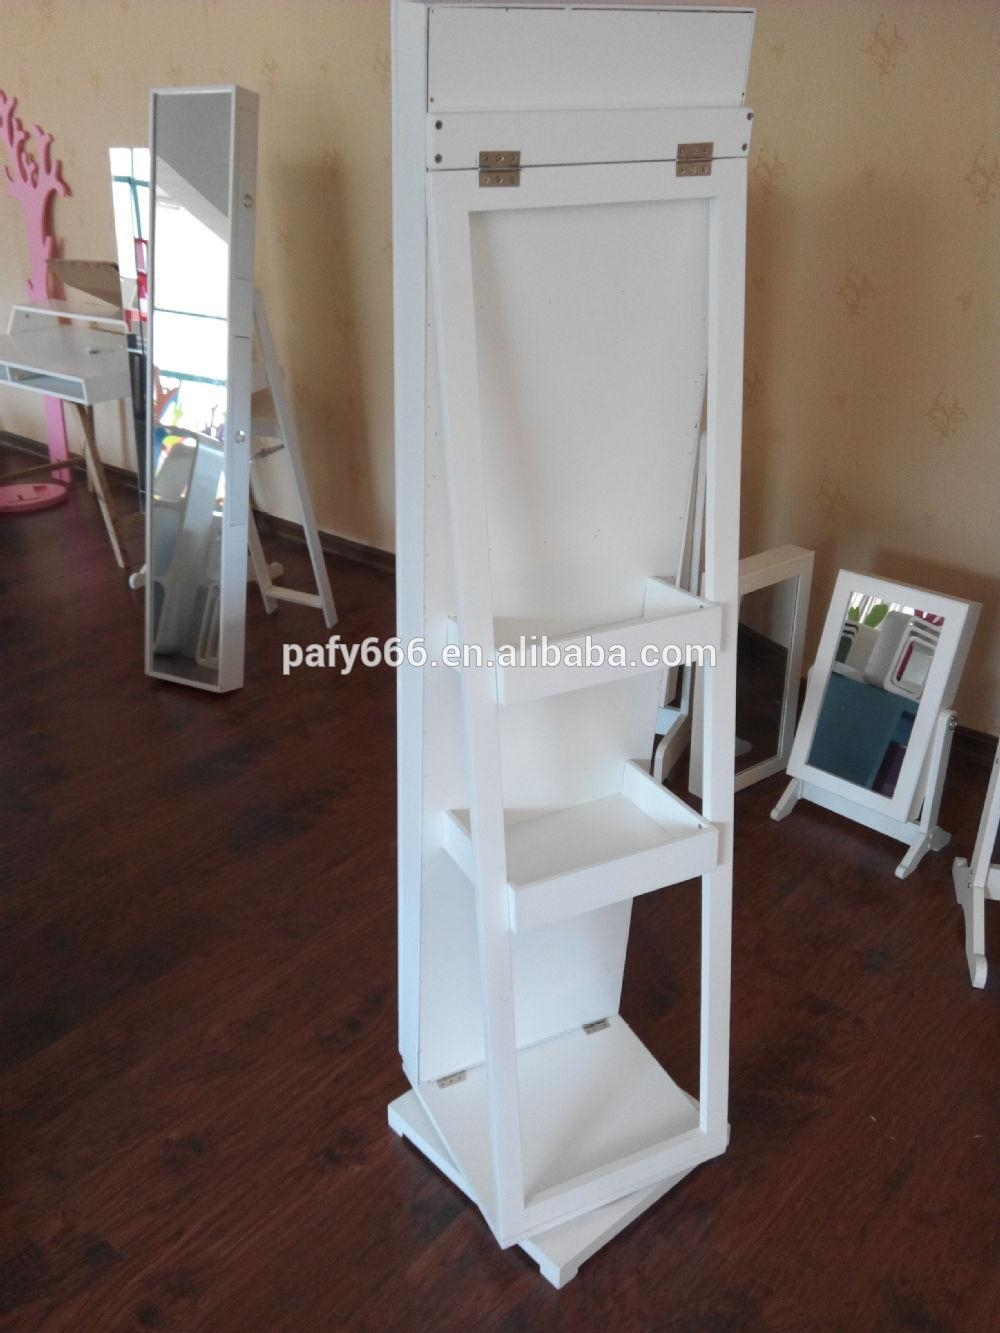 Standing Mirror Jewelry Armoire Full Length Dressing Mirror With Regarding Dressing Mirrors Free Standing (Image 19 of 20)